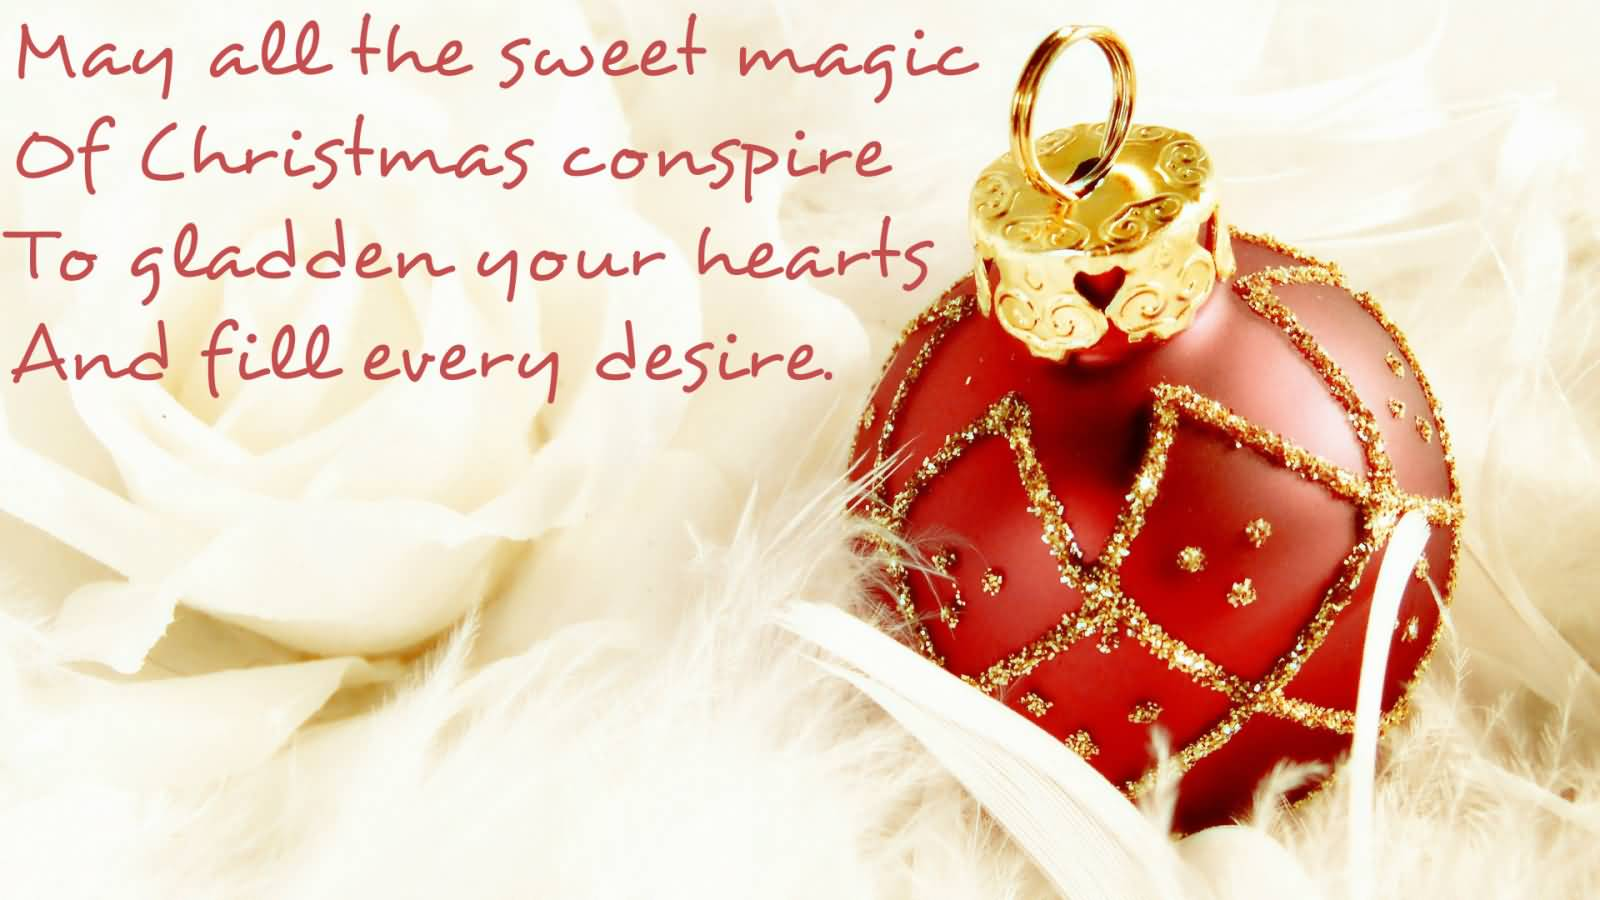 Magic Of Christmas.May All The Sweet Magic Of Christmas Conspire To Gladden